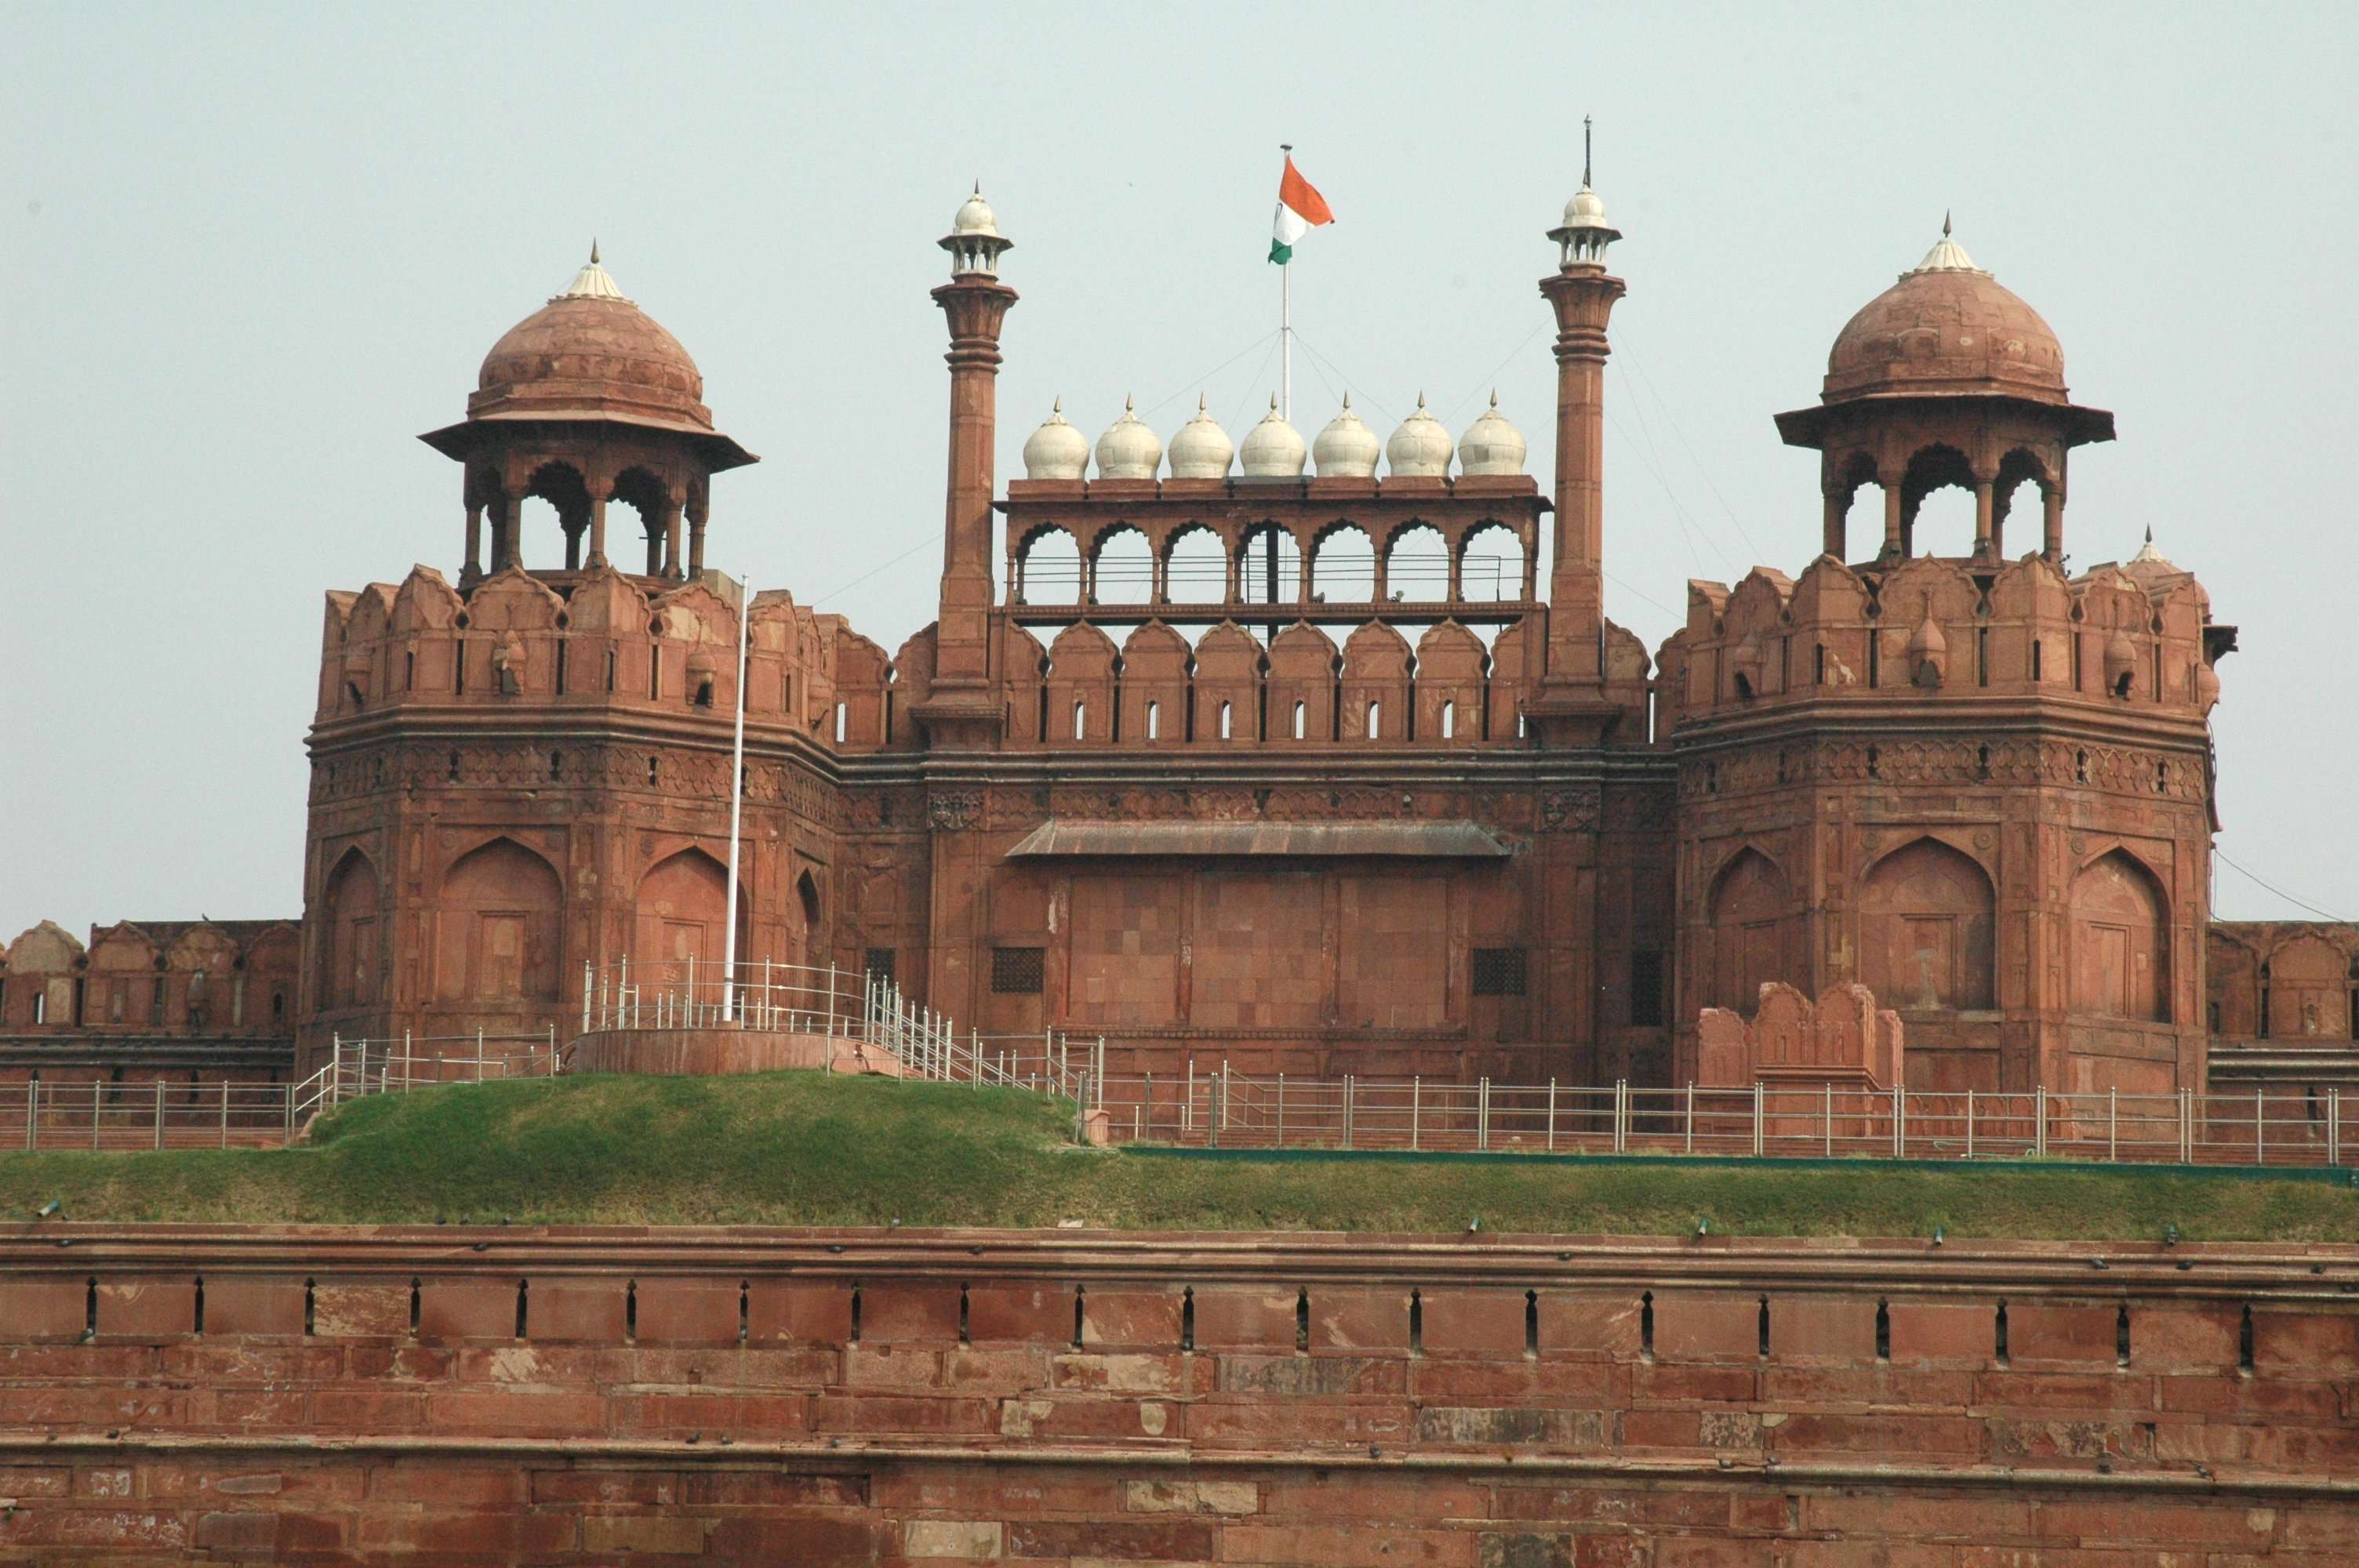 Delhi One Of The Oldest Cities Of The World